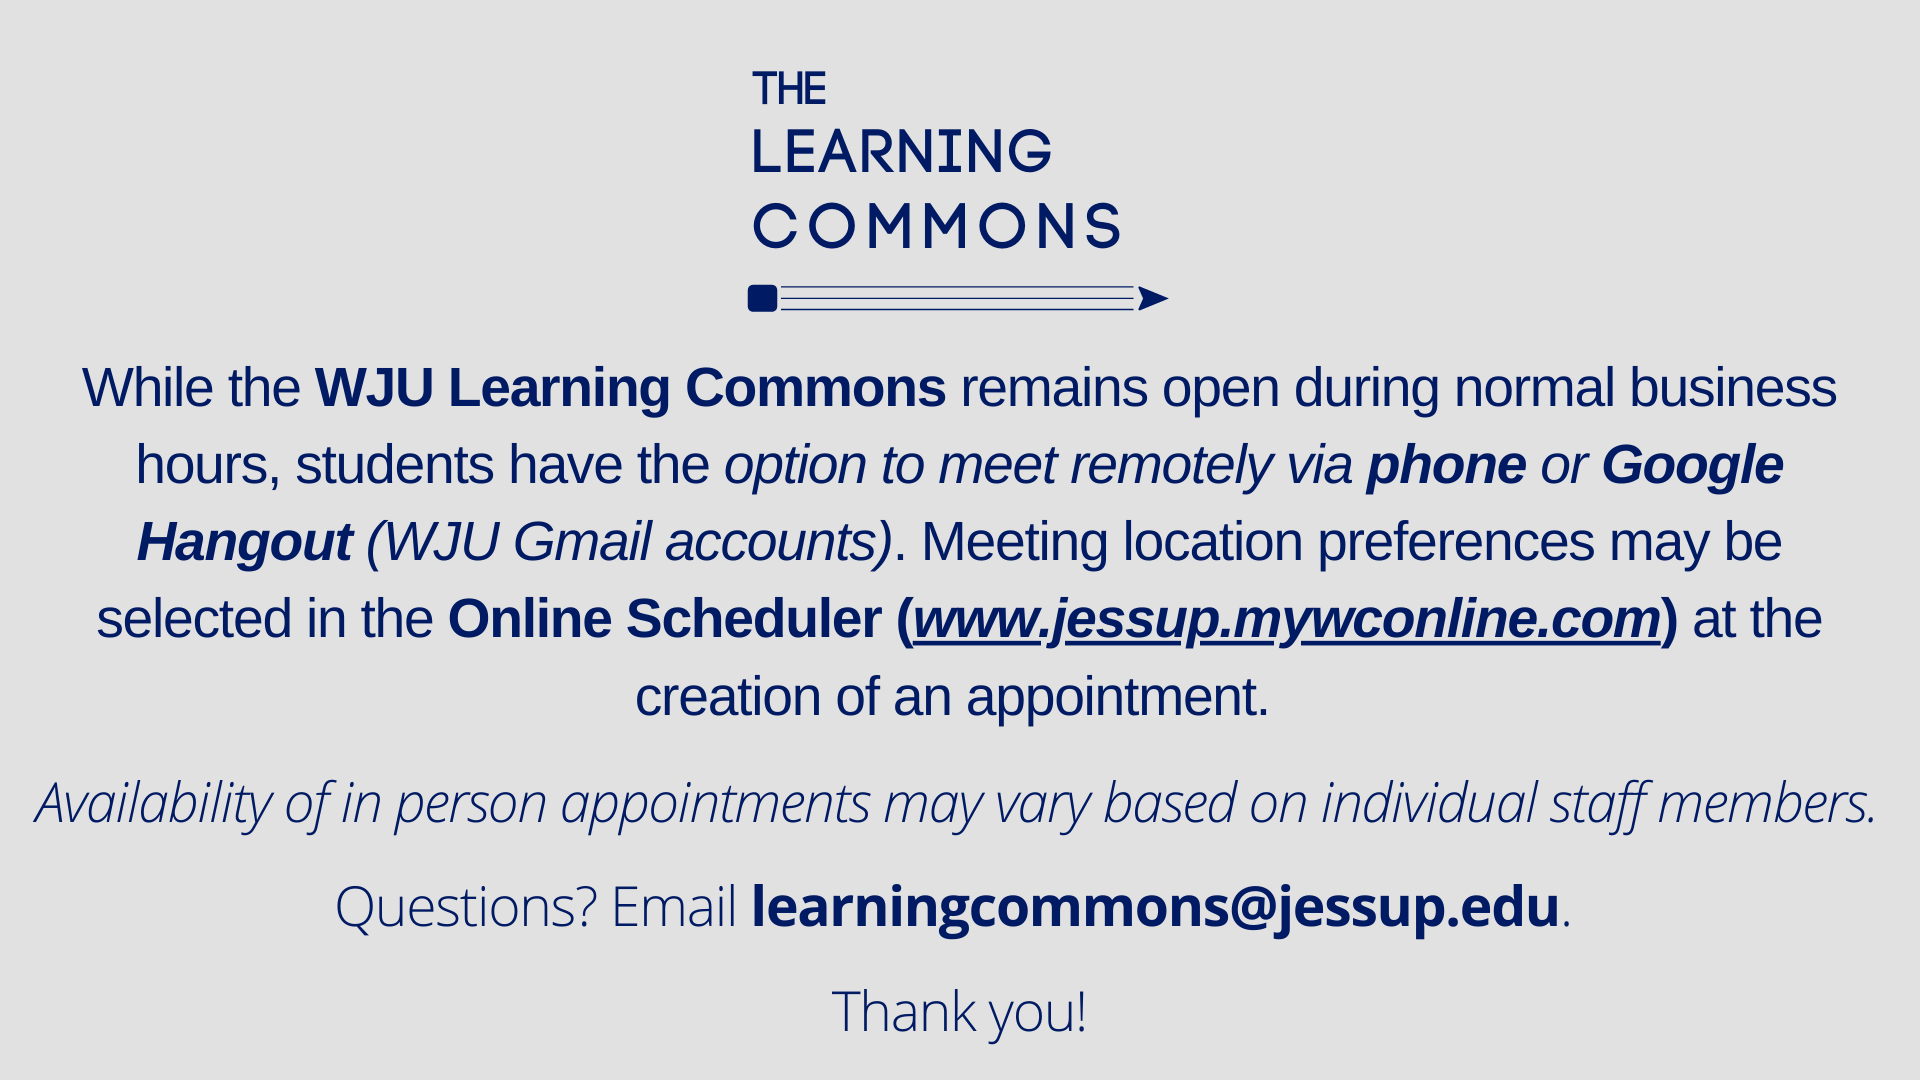 While the WJU Learning Commons remains open during normal business hours, students have the option to meet remotely via phone or Google Hangout (WJU Gmail accounts). Meeting location preferences may be selected in the Online Scheduler (www.jessup.mywconline.com) at the creation of an appointment. Availability of in person appointments may vary based on individual staff members. Questions? Email learningcommons@jessup.edu. Thank you!